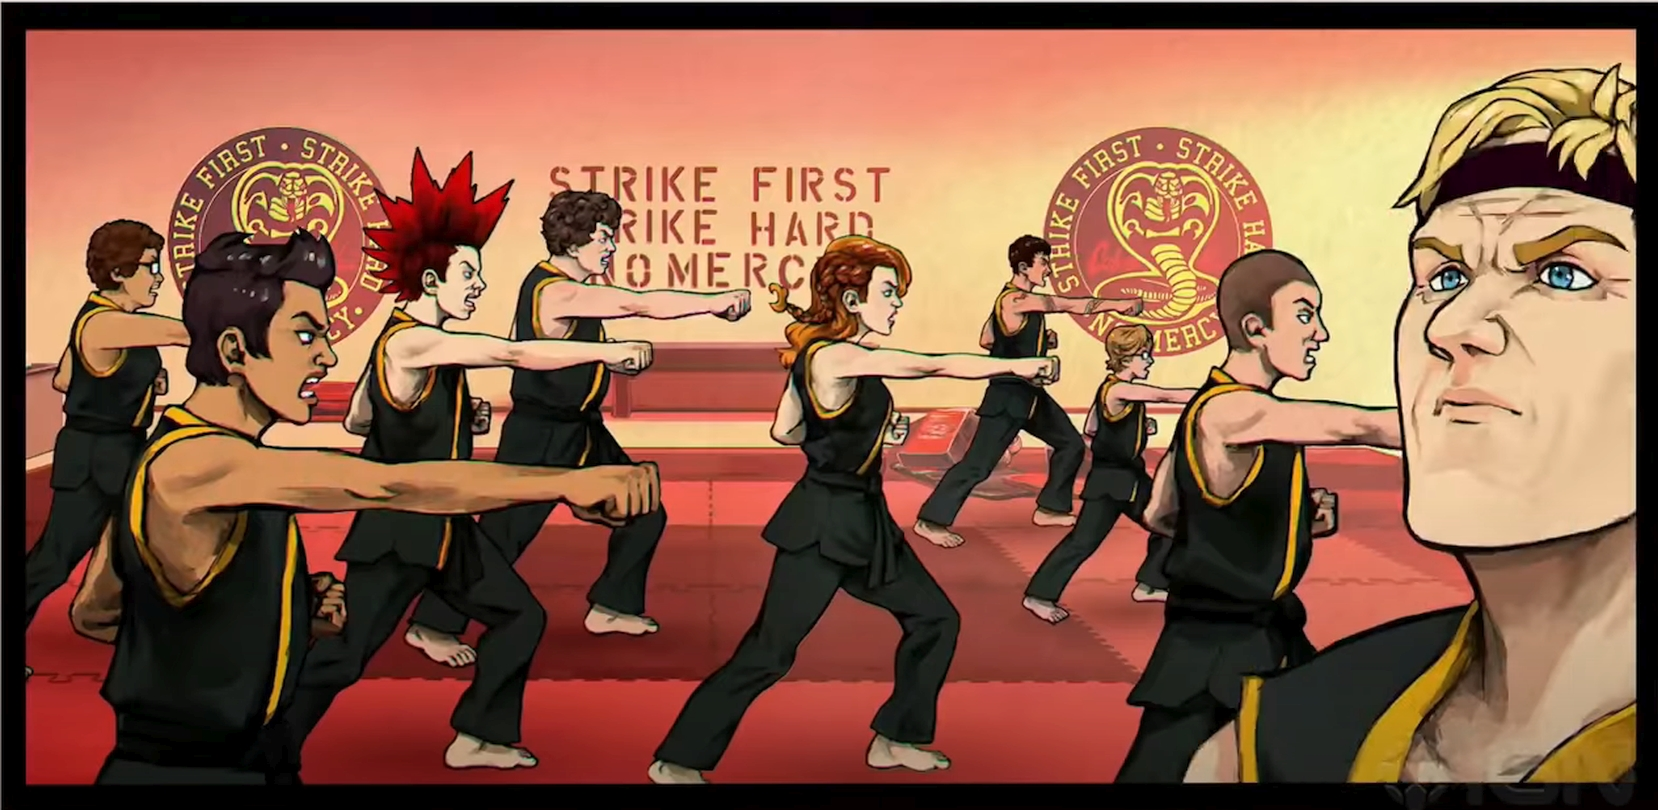 Cobra Kai: The Karate Kid Saga Continues Strikes Hard On Consoles In Time For Halloween